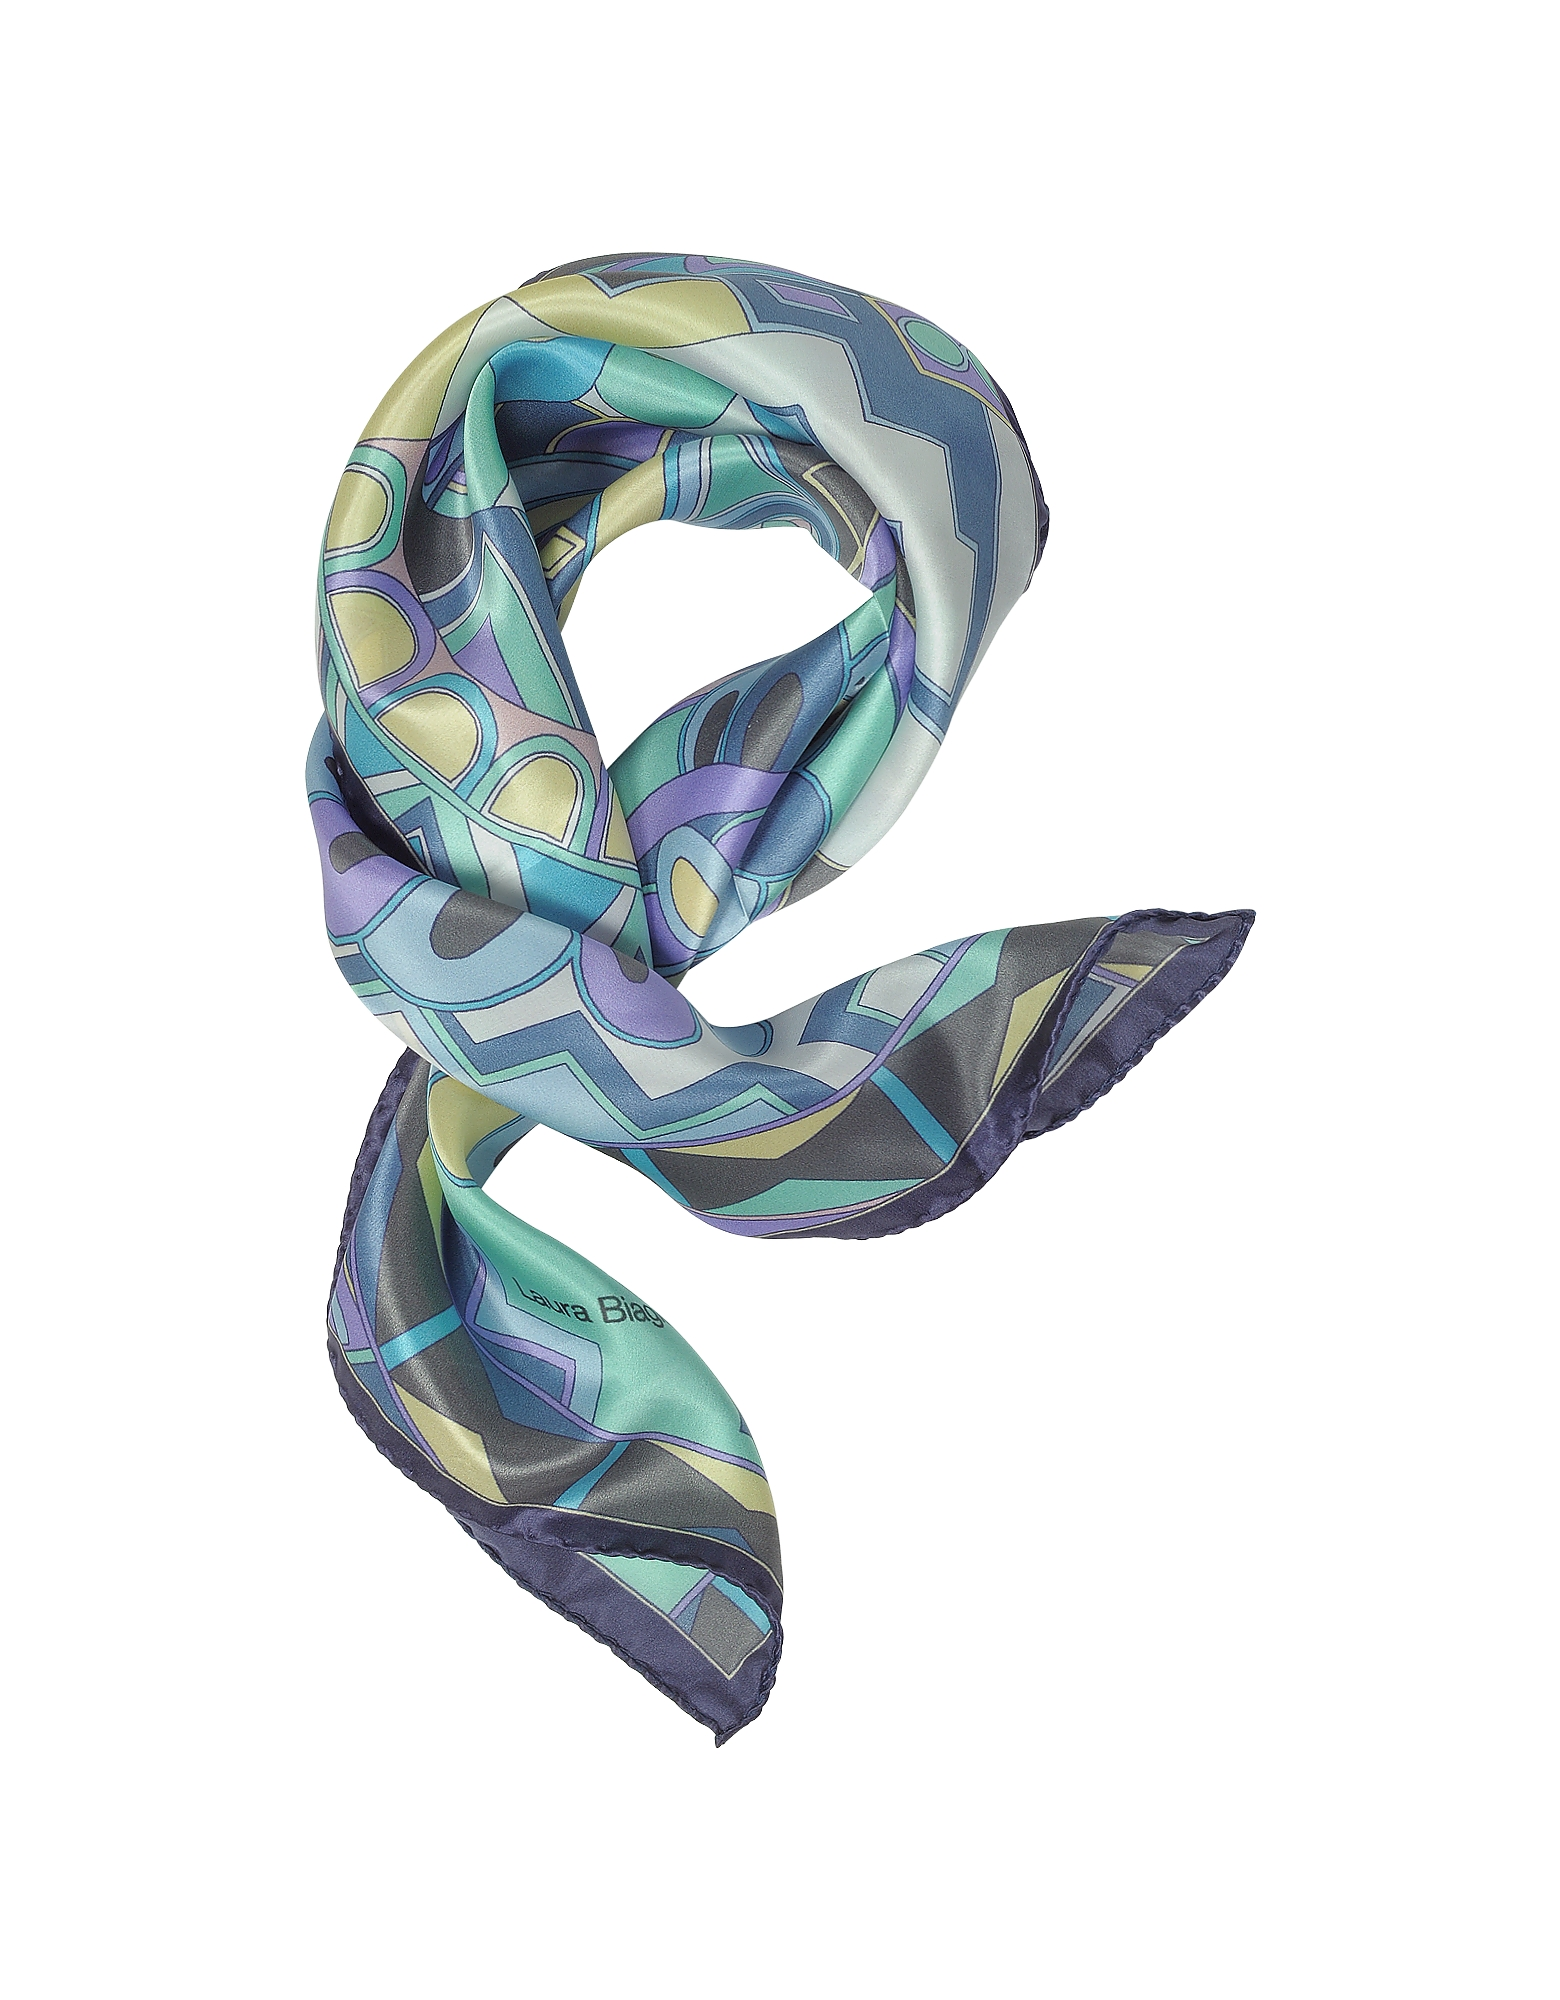 Laura Biagiotti Bandanas, Purple and Blue Floral & Geometric Print Satin Silk Bandana